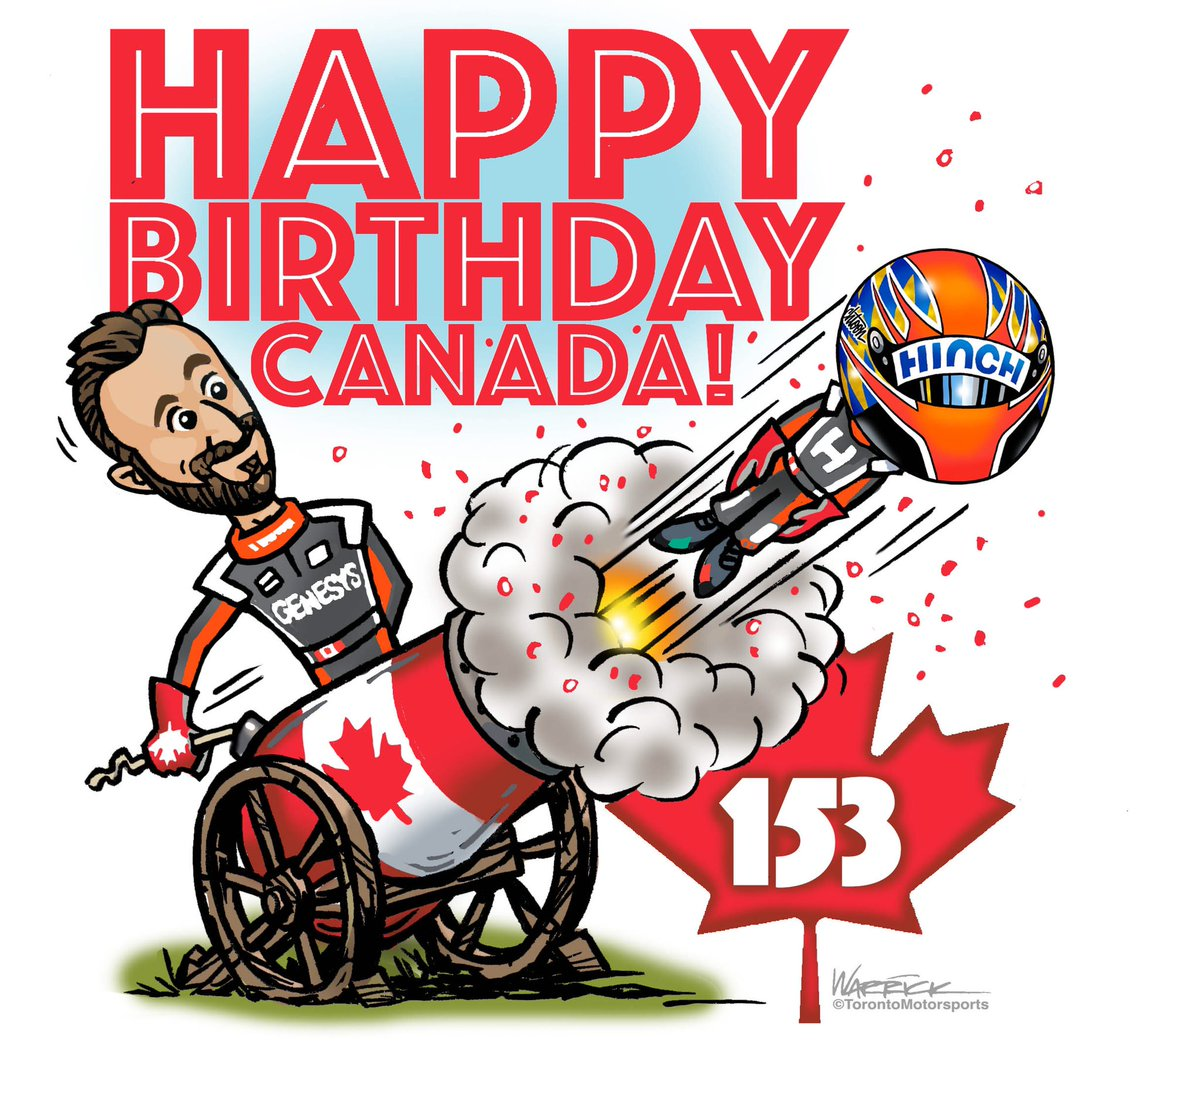 It's one of my favourite days of the year! #CanadaDay! Like Christmas in July! So put on your best flannel shirt, crack a beer, chug some syrup and sing O Canada (hybrid version) as loud as you can! Happy Canada Day to all the Canucks across the globe! https://t.co/TTRuqlHUEJ